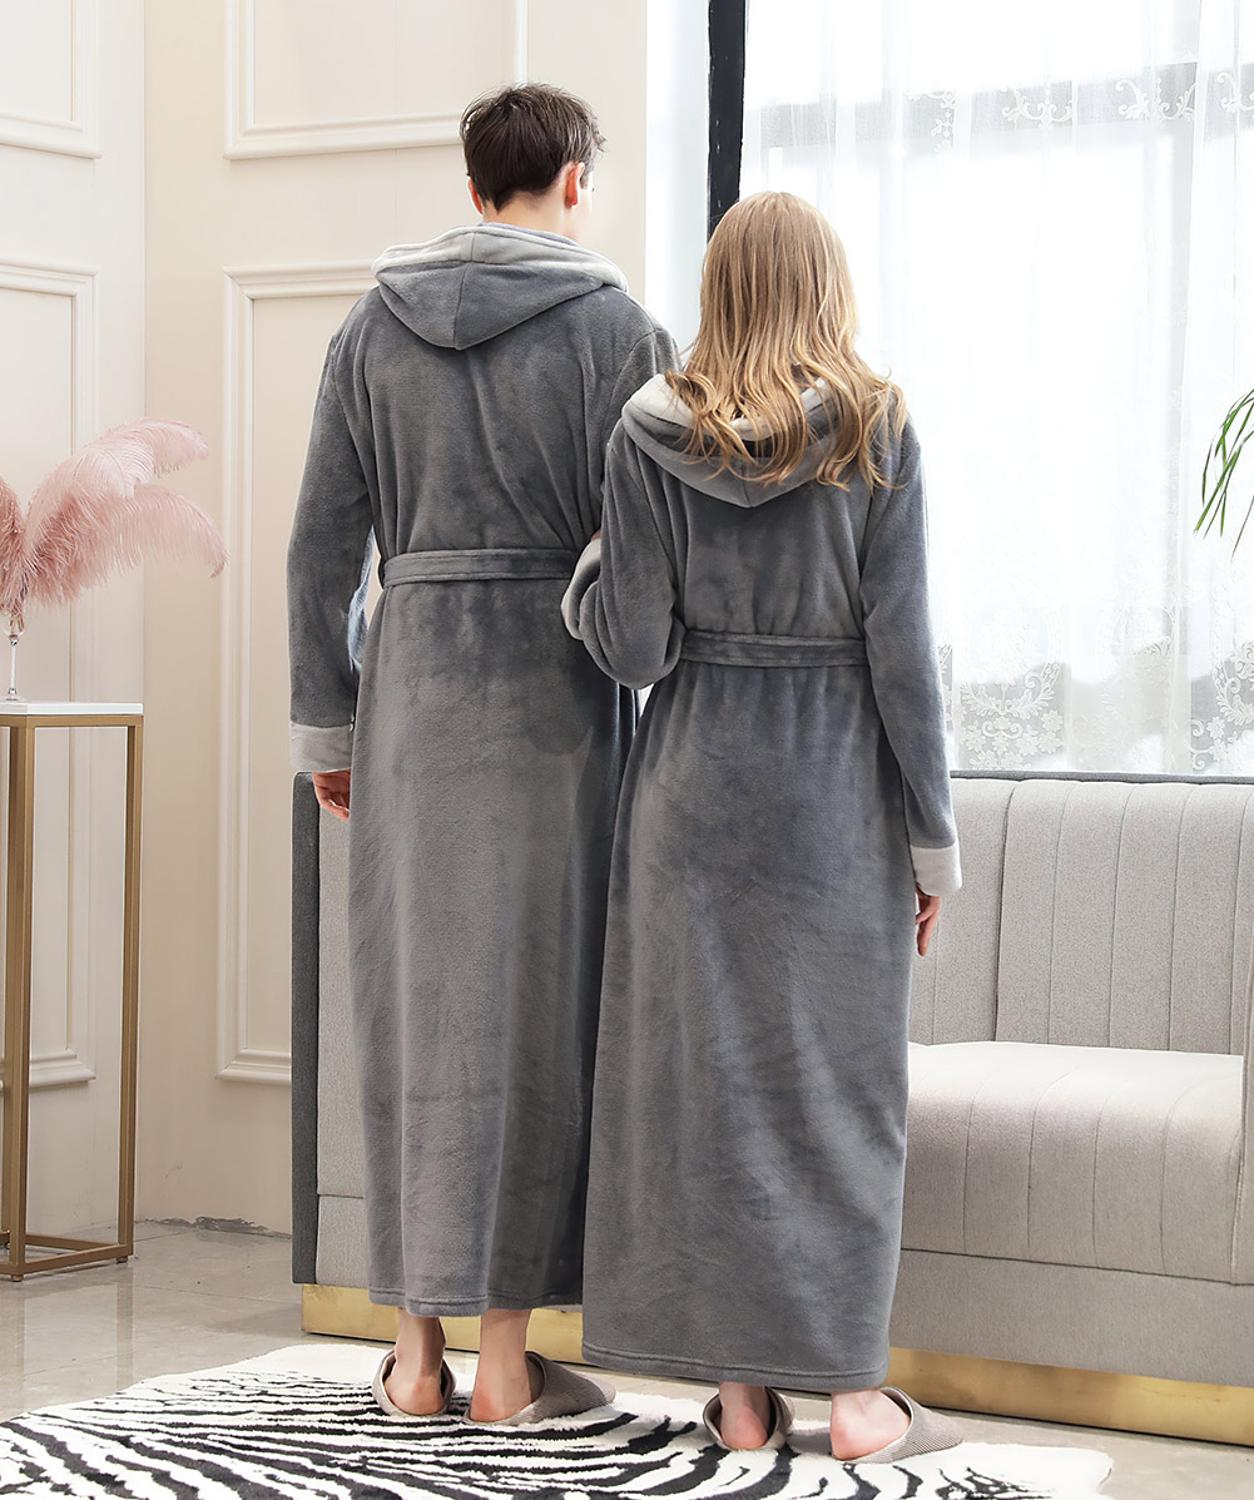 Lovers Couple Long Hooded Pajamas Coral Fleece Robe Winter Thick Warm Women Men Nightgown Bath Gown Female Large Size Sleepwear